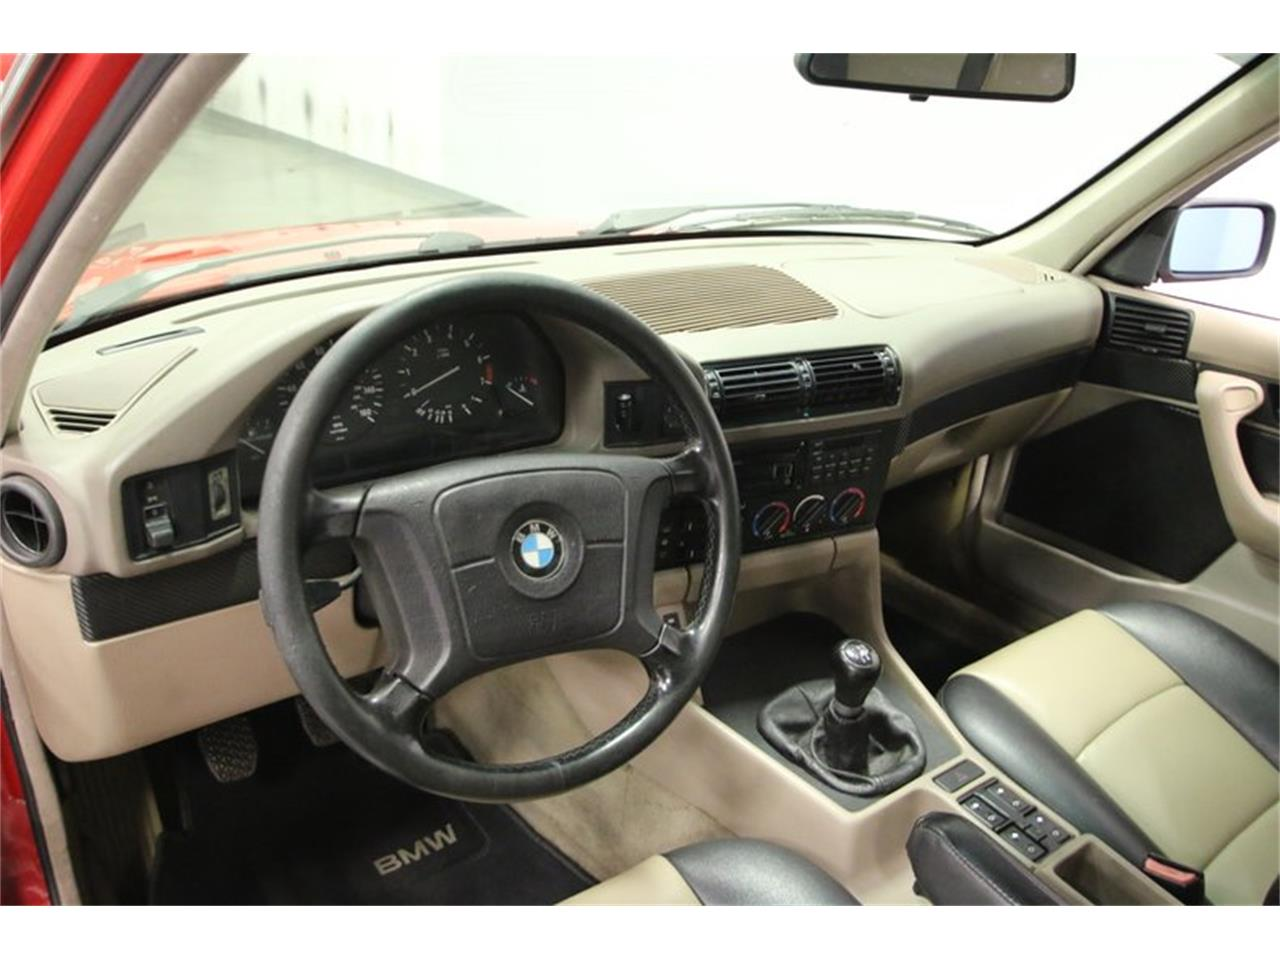 Large Picture of 1995 BMW 525iT - $10,995.00 Offered by Streetside Classics - Nashville - PX0T